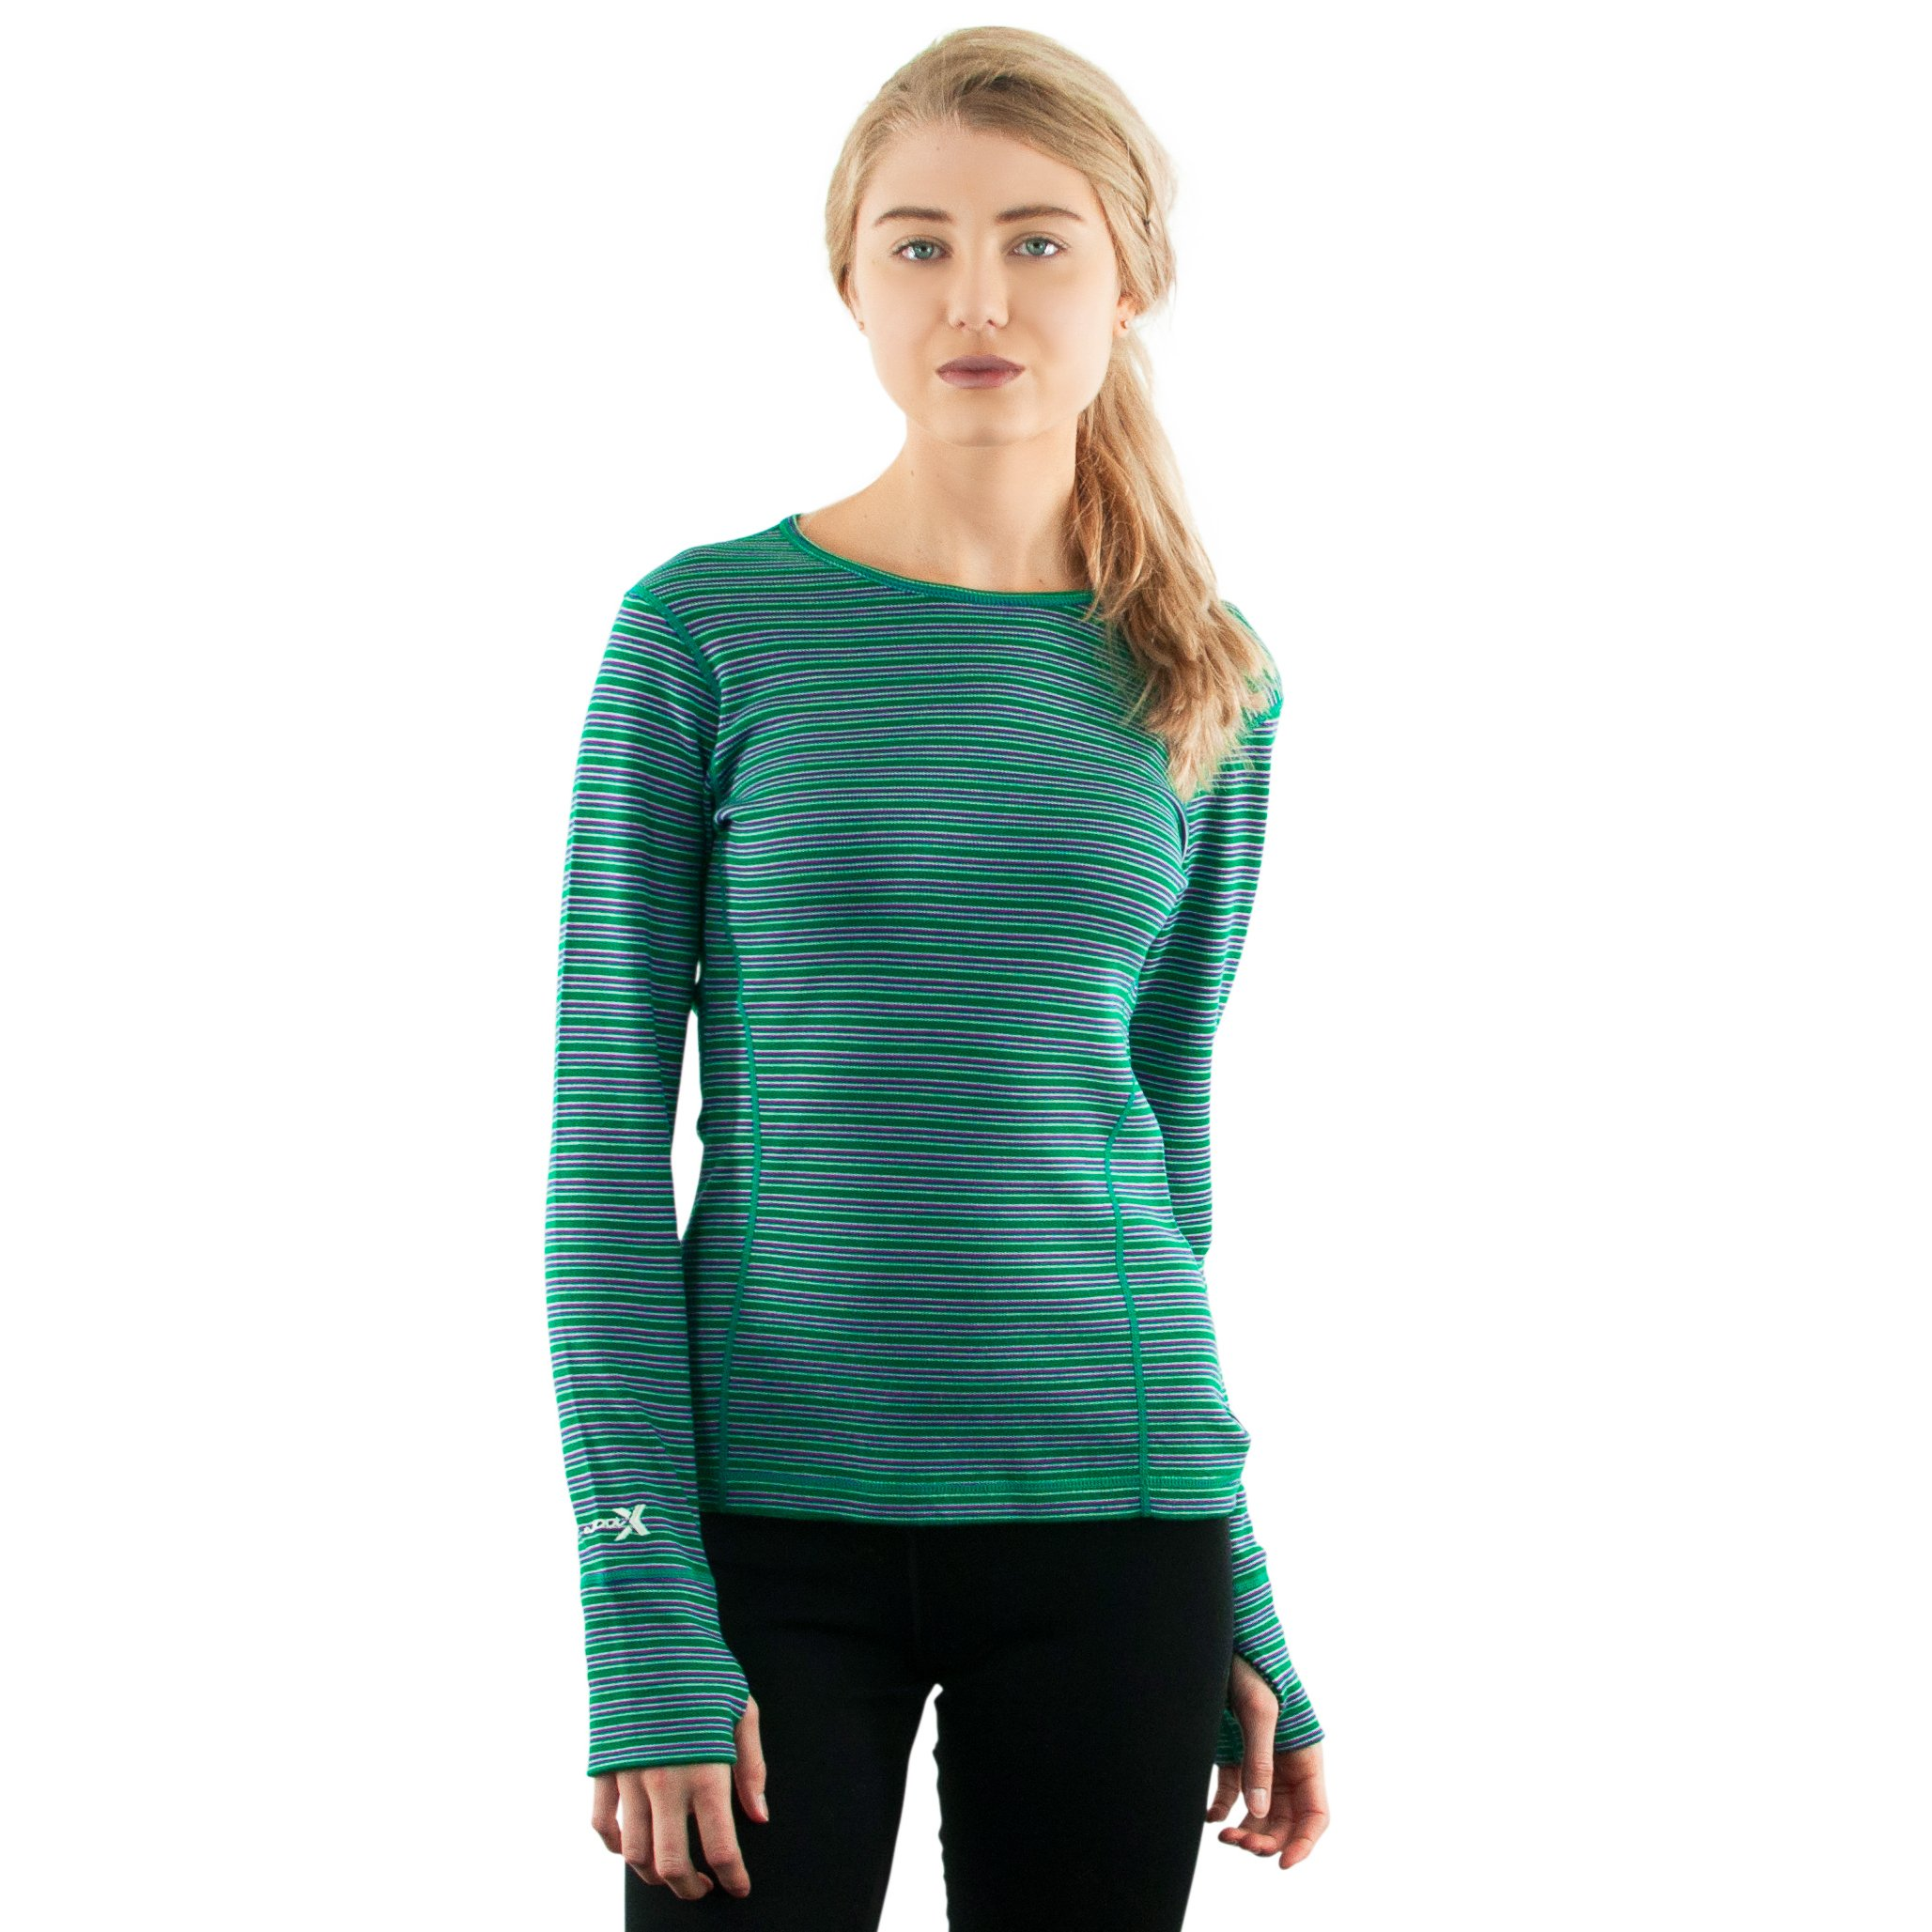 WoolX X752 Womens Heavyweight Alpine Top - Emerald/Stripe - XSM by WoolX